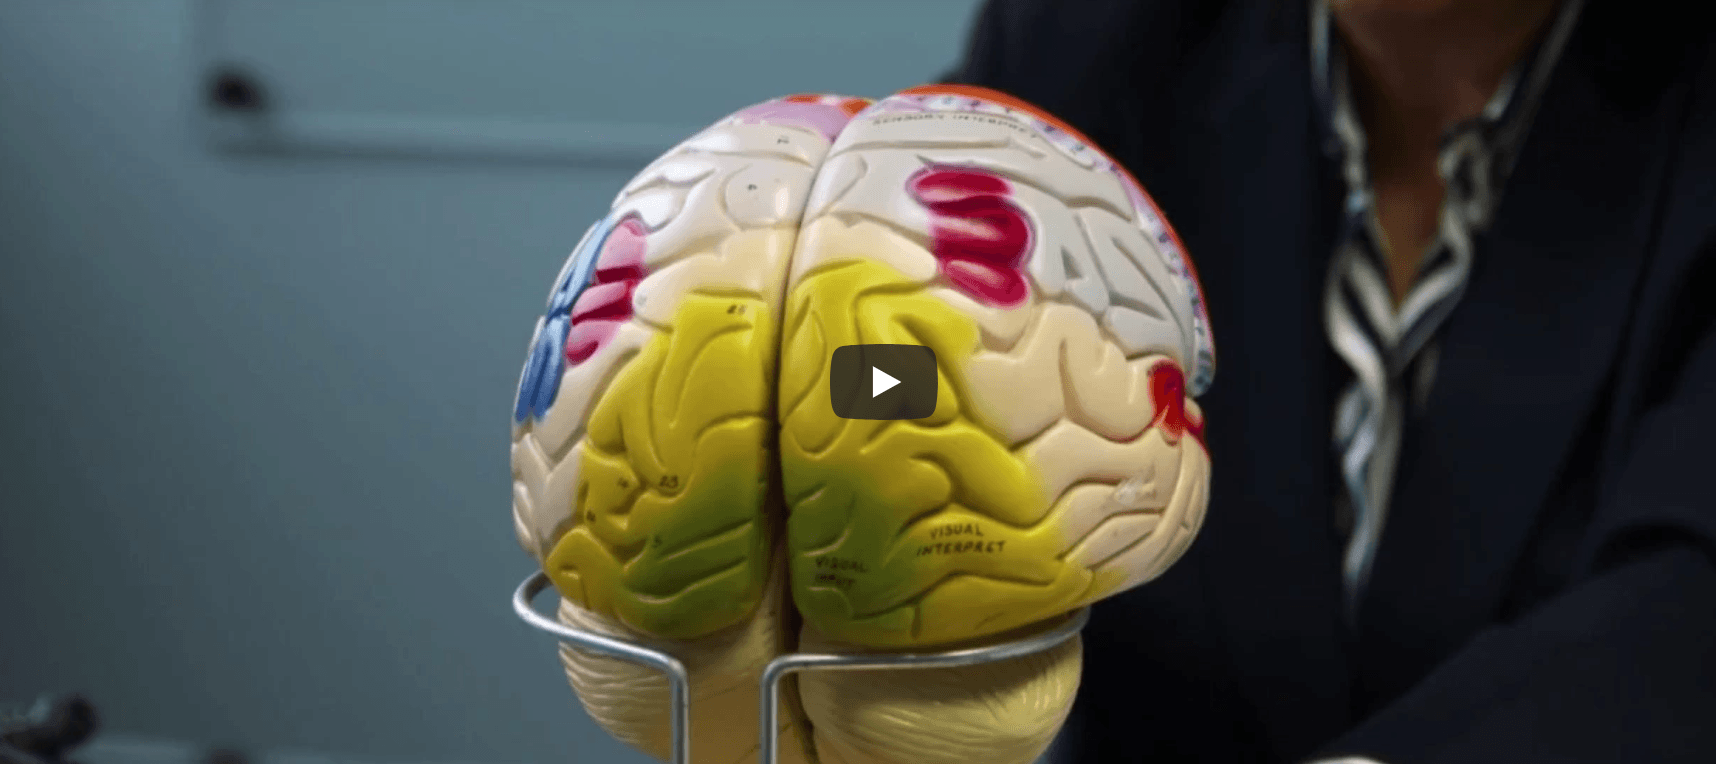 How does trauma change the brain?